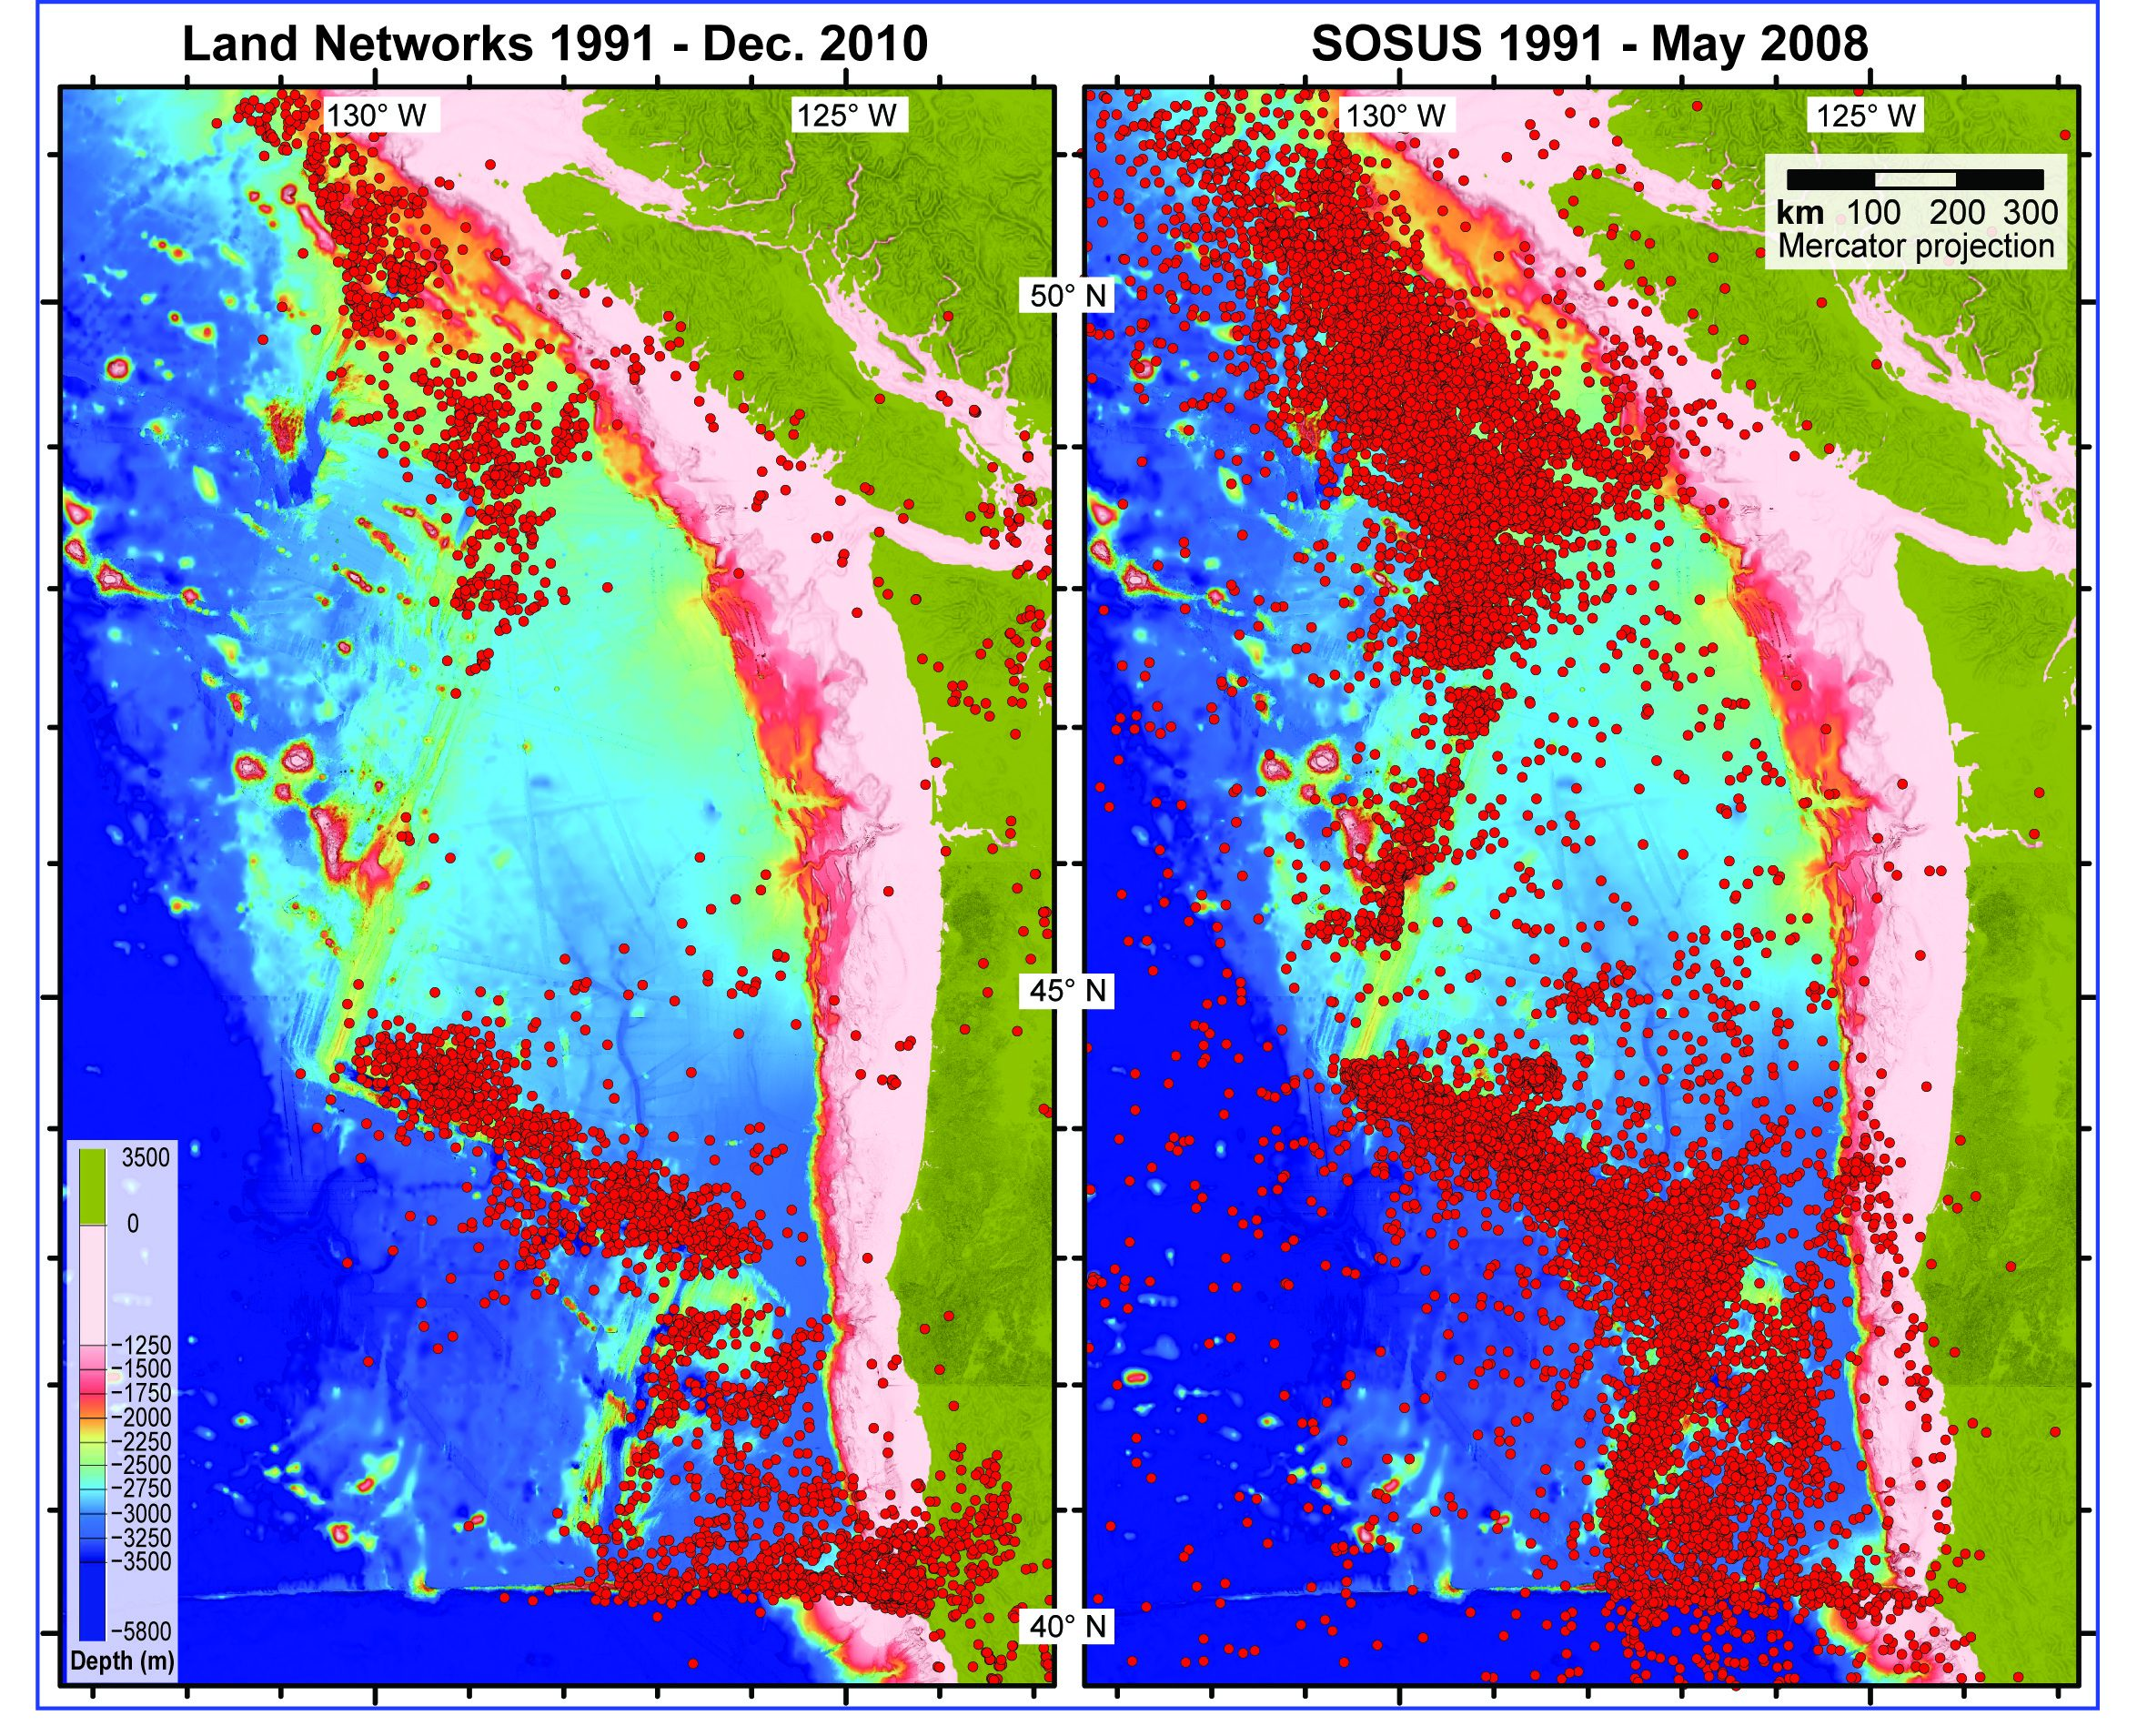 Seismicity of the offshore Pacific Northwest and Vancouver Island based on land networks of seismographs (left) and a highly-sensitive hydrophone array (Sound Surveillance System, or SOSUS) that transmits sound through the water column (right)